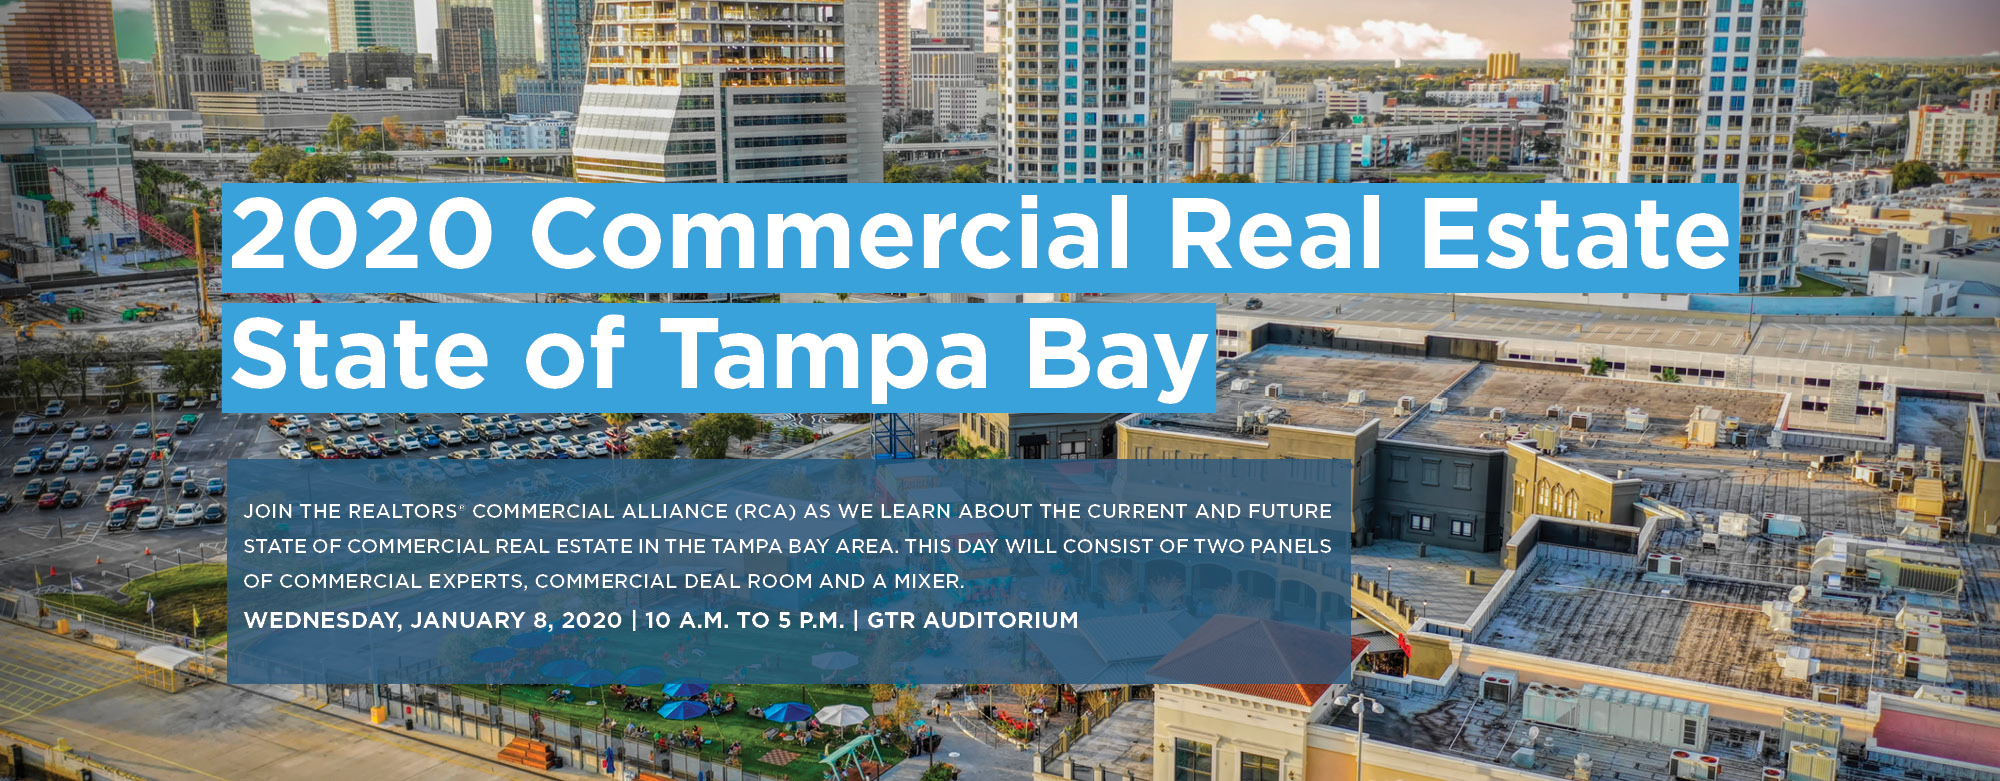 2020 Commercial Real Estate State of Tampa Bay2